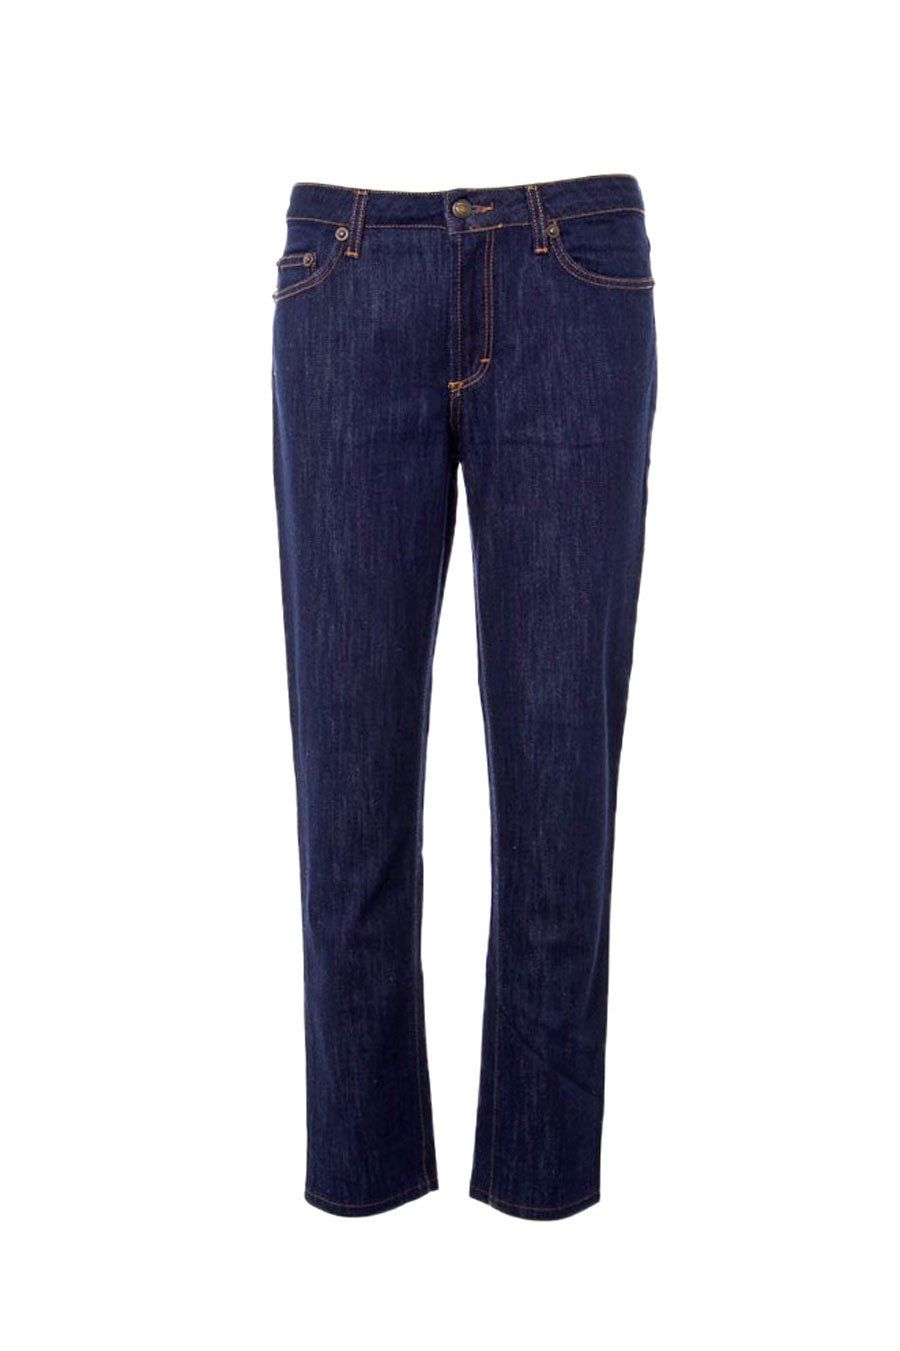 Just Cavalli Women's Jeans In Blue